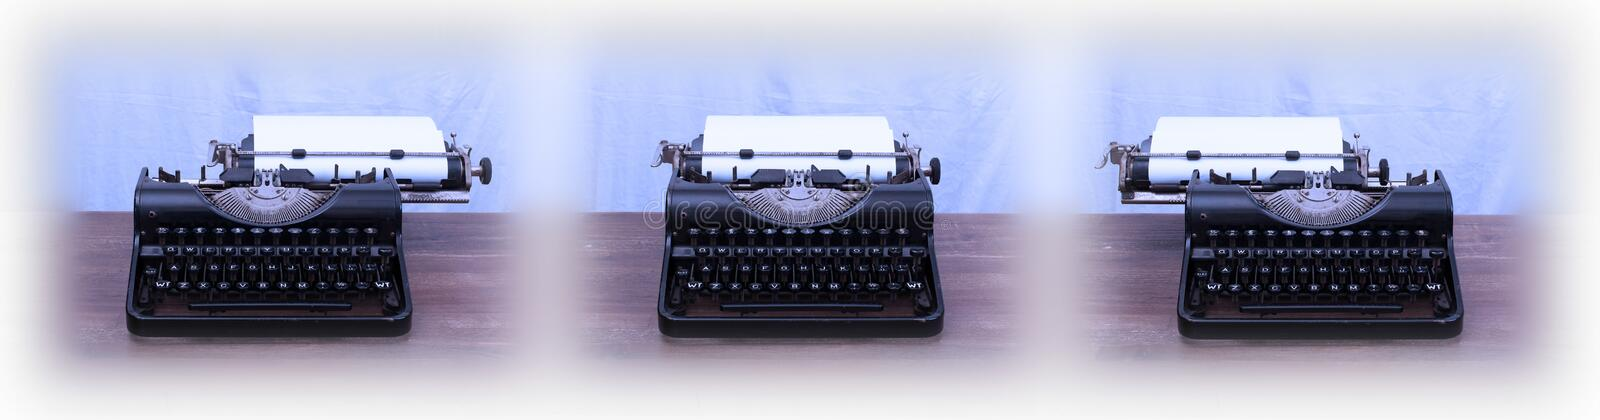 Old typewriter on wooden table. Series of three royalty free stock images